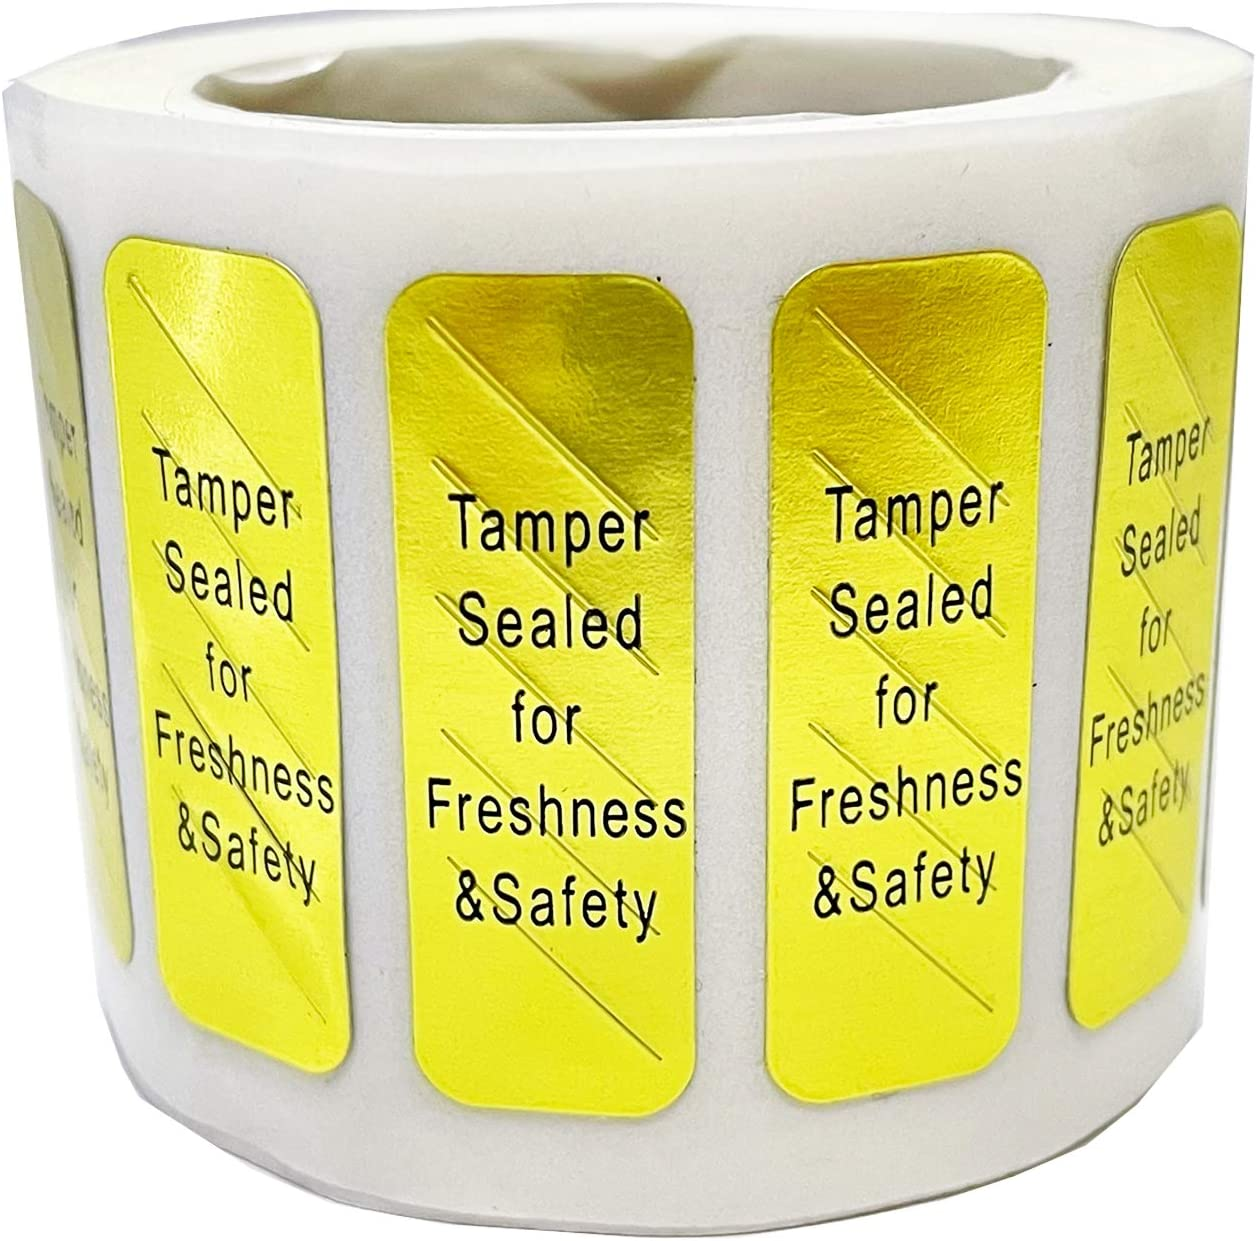 Tamper Sealed for Freshness and Safety Food Delivery Stickers 0.5X1.5 inch Tamper Evident Labels for Food Containers Bags 500 pcs Per Roll